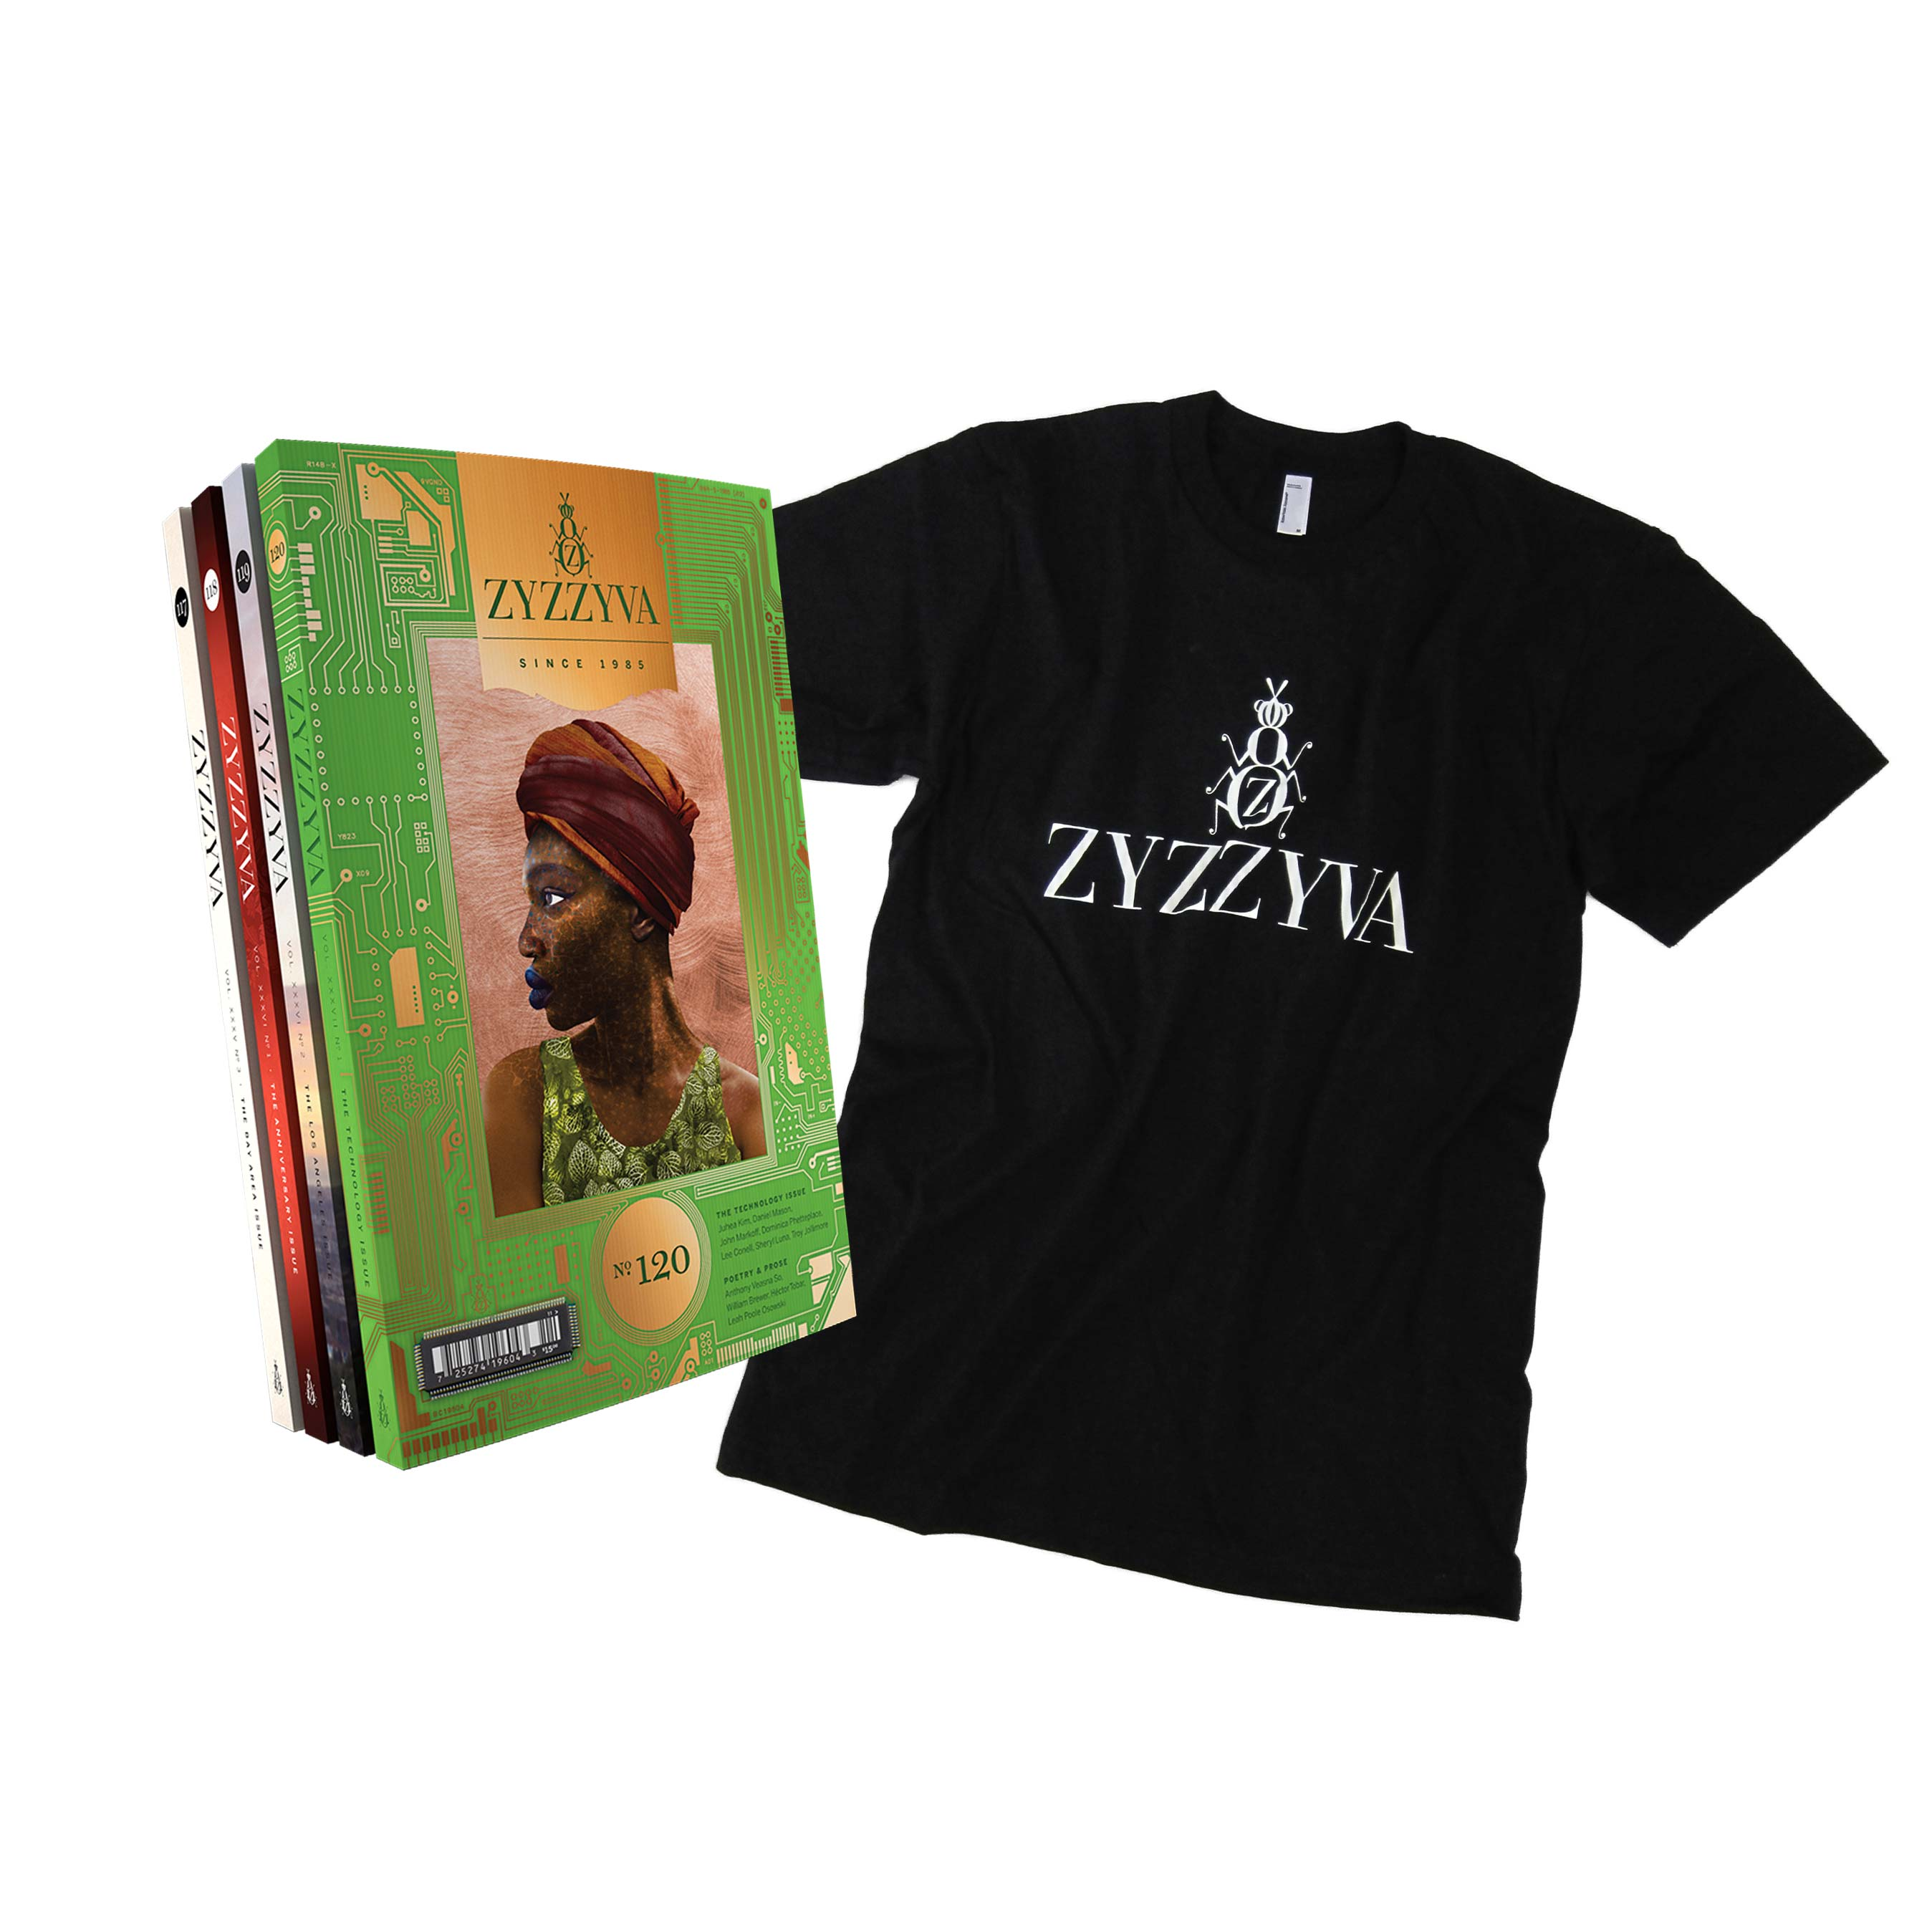 ZYZZYVA T-shirt and subscription bundle